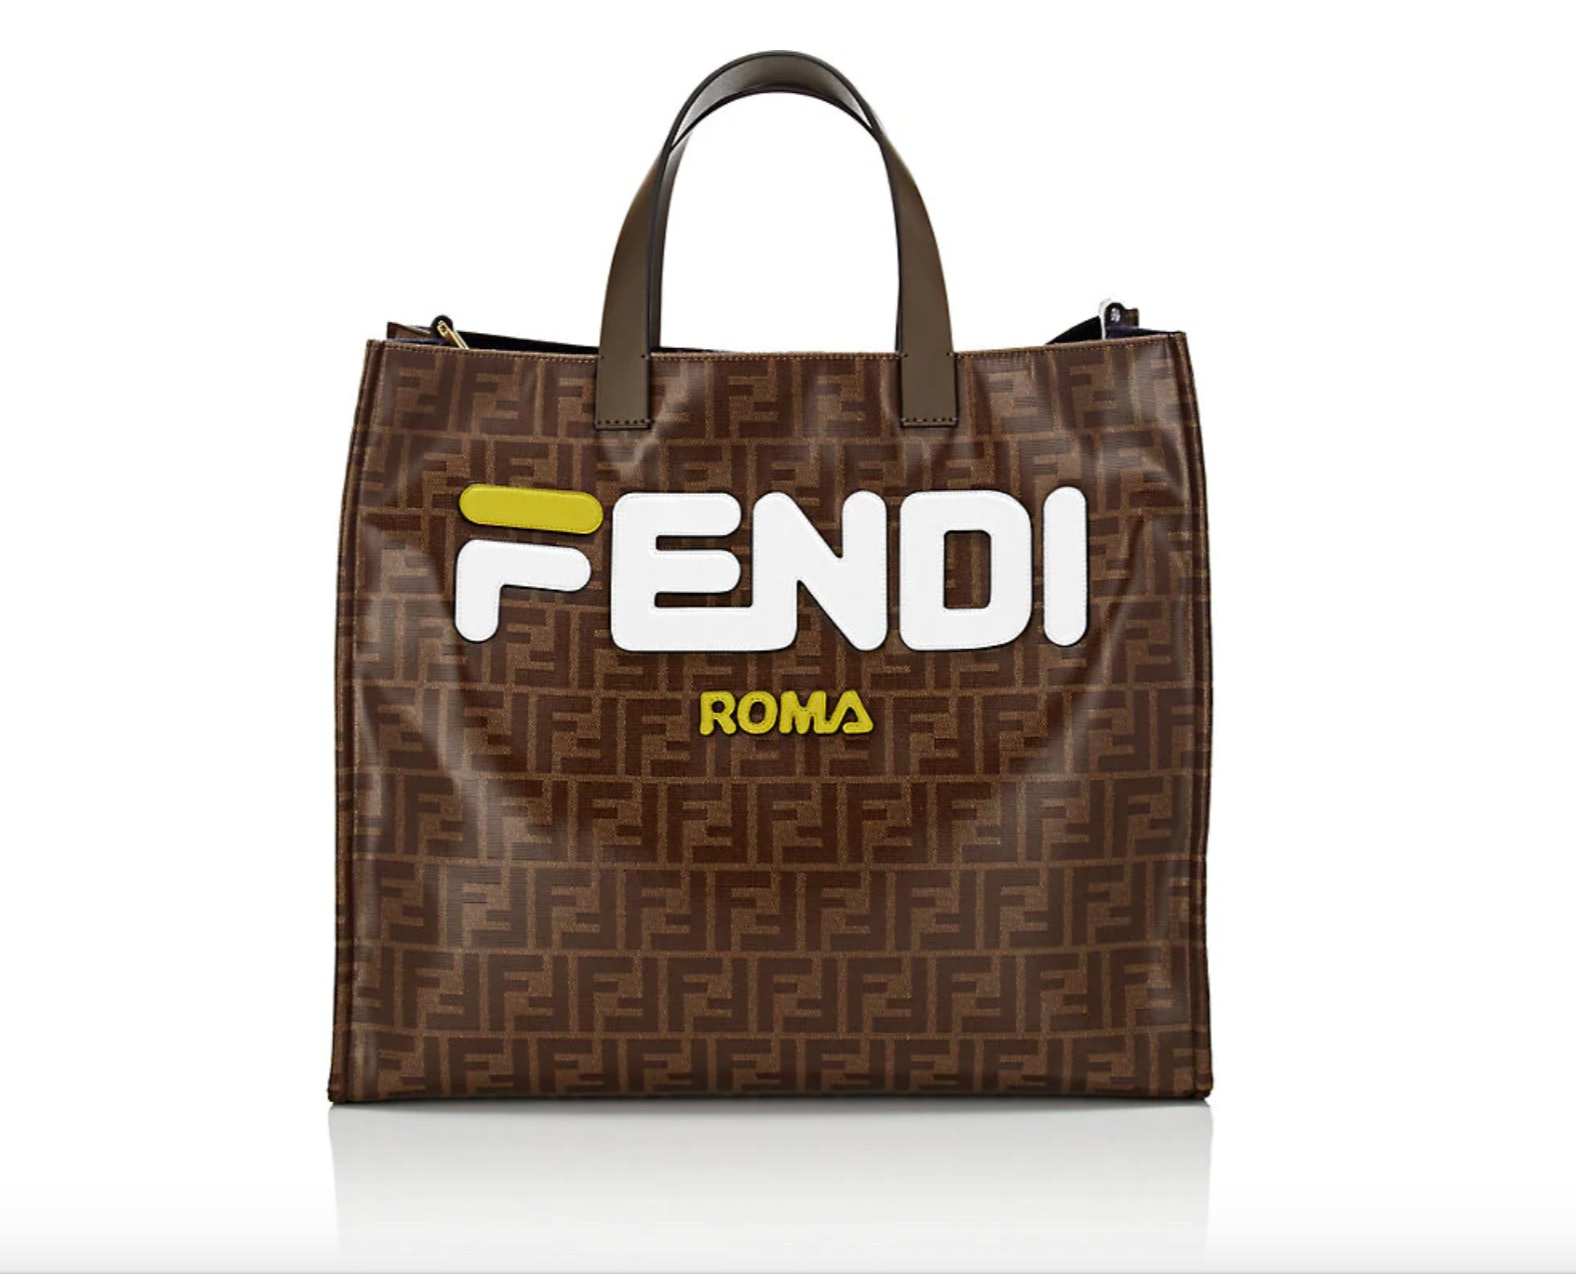 354ecf4ad2a8 Logo Bags Are Fall 2018's Must-Have Trend (And 2002 Us Is SO Happy)